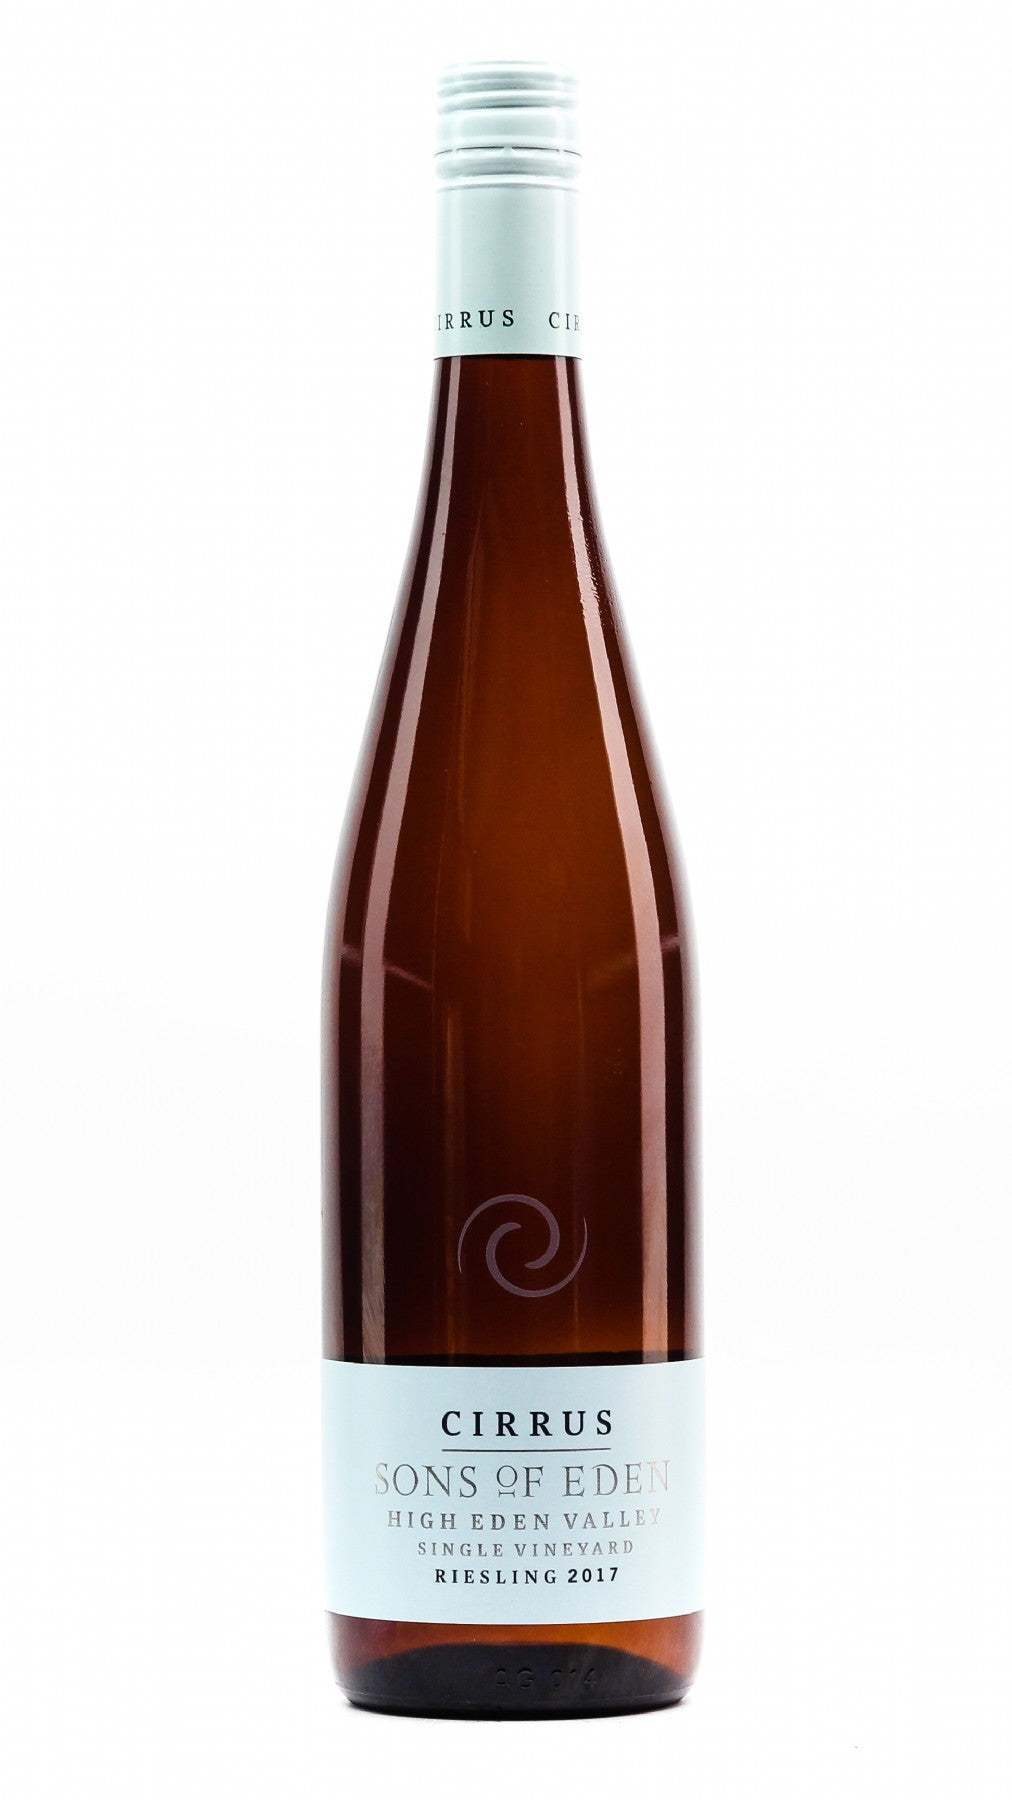 SONS OF EDEN RIESLING CIRRUS 17